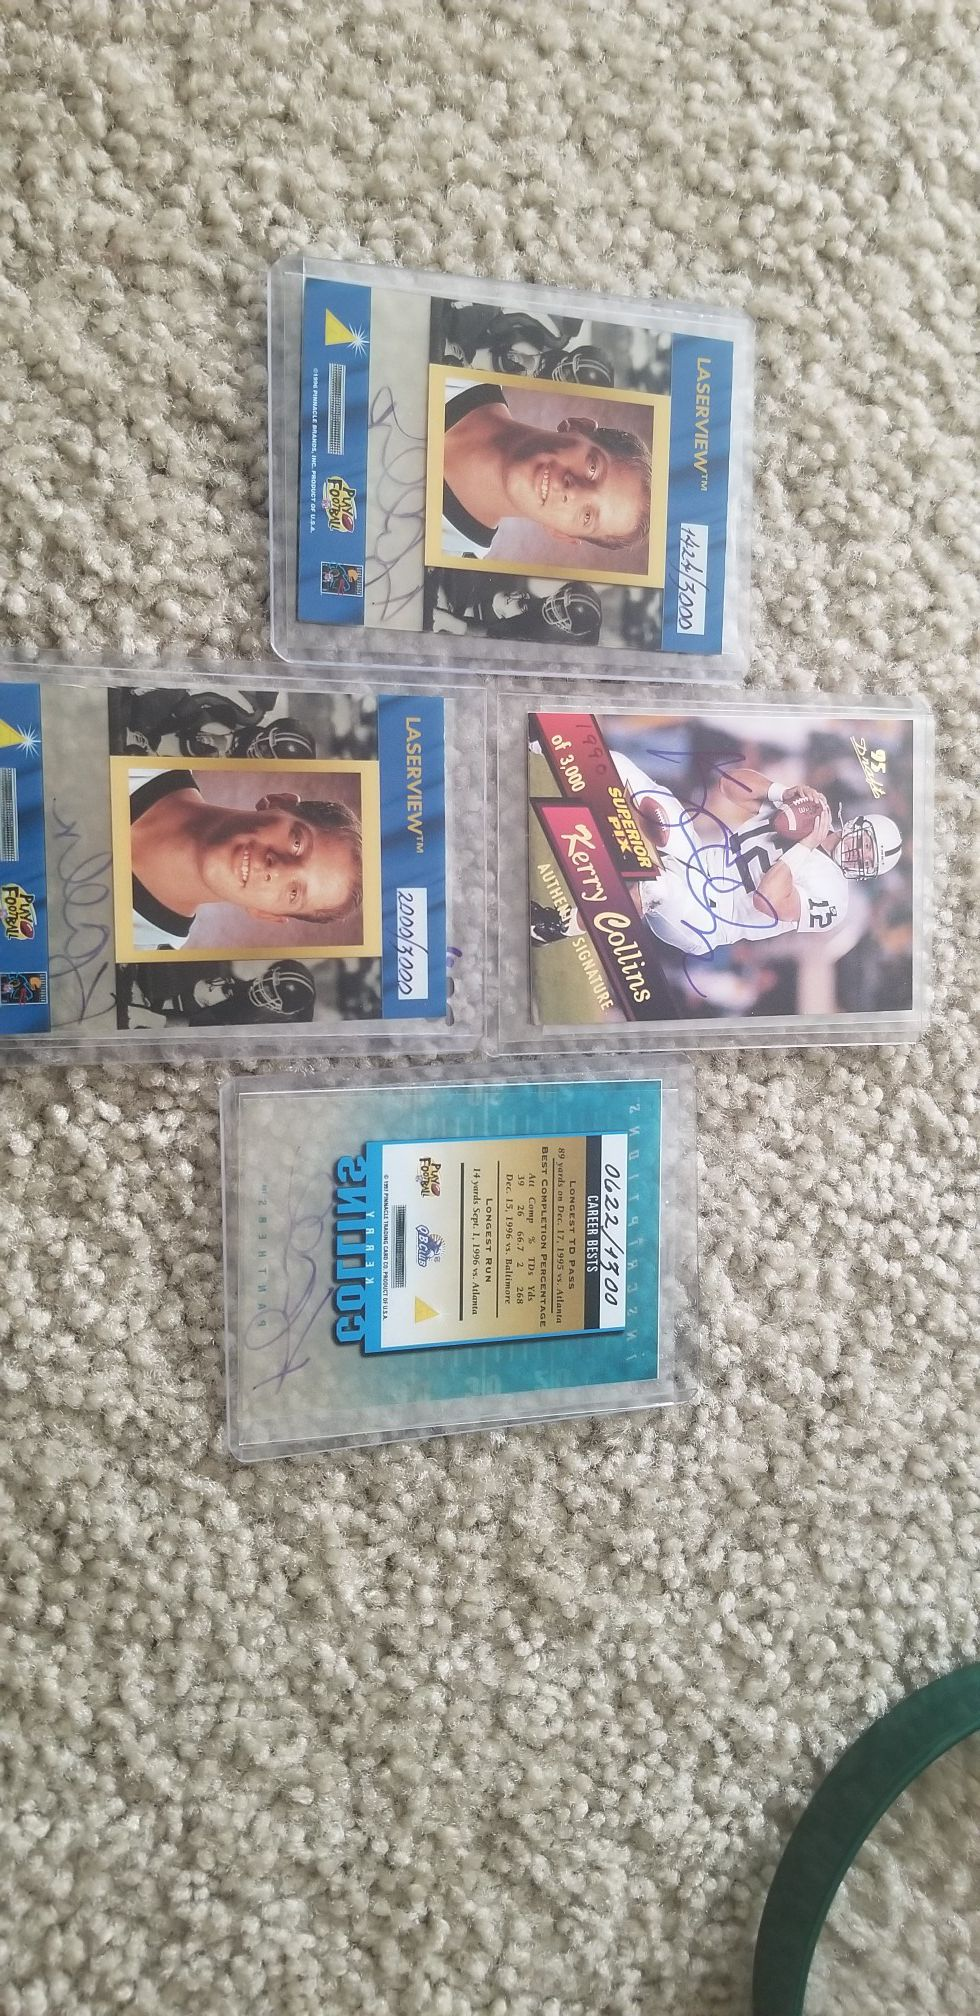 Kerry Collins Auto collection - football cards